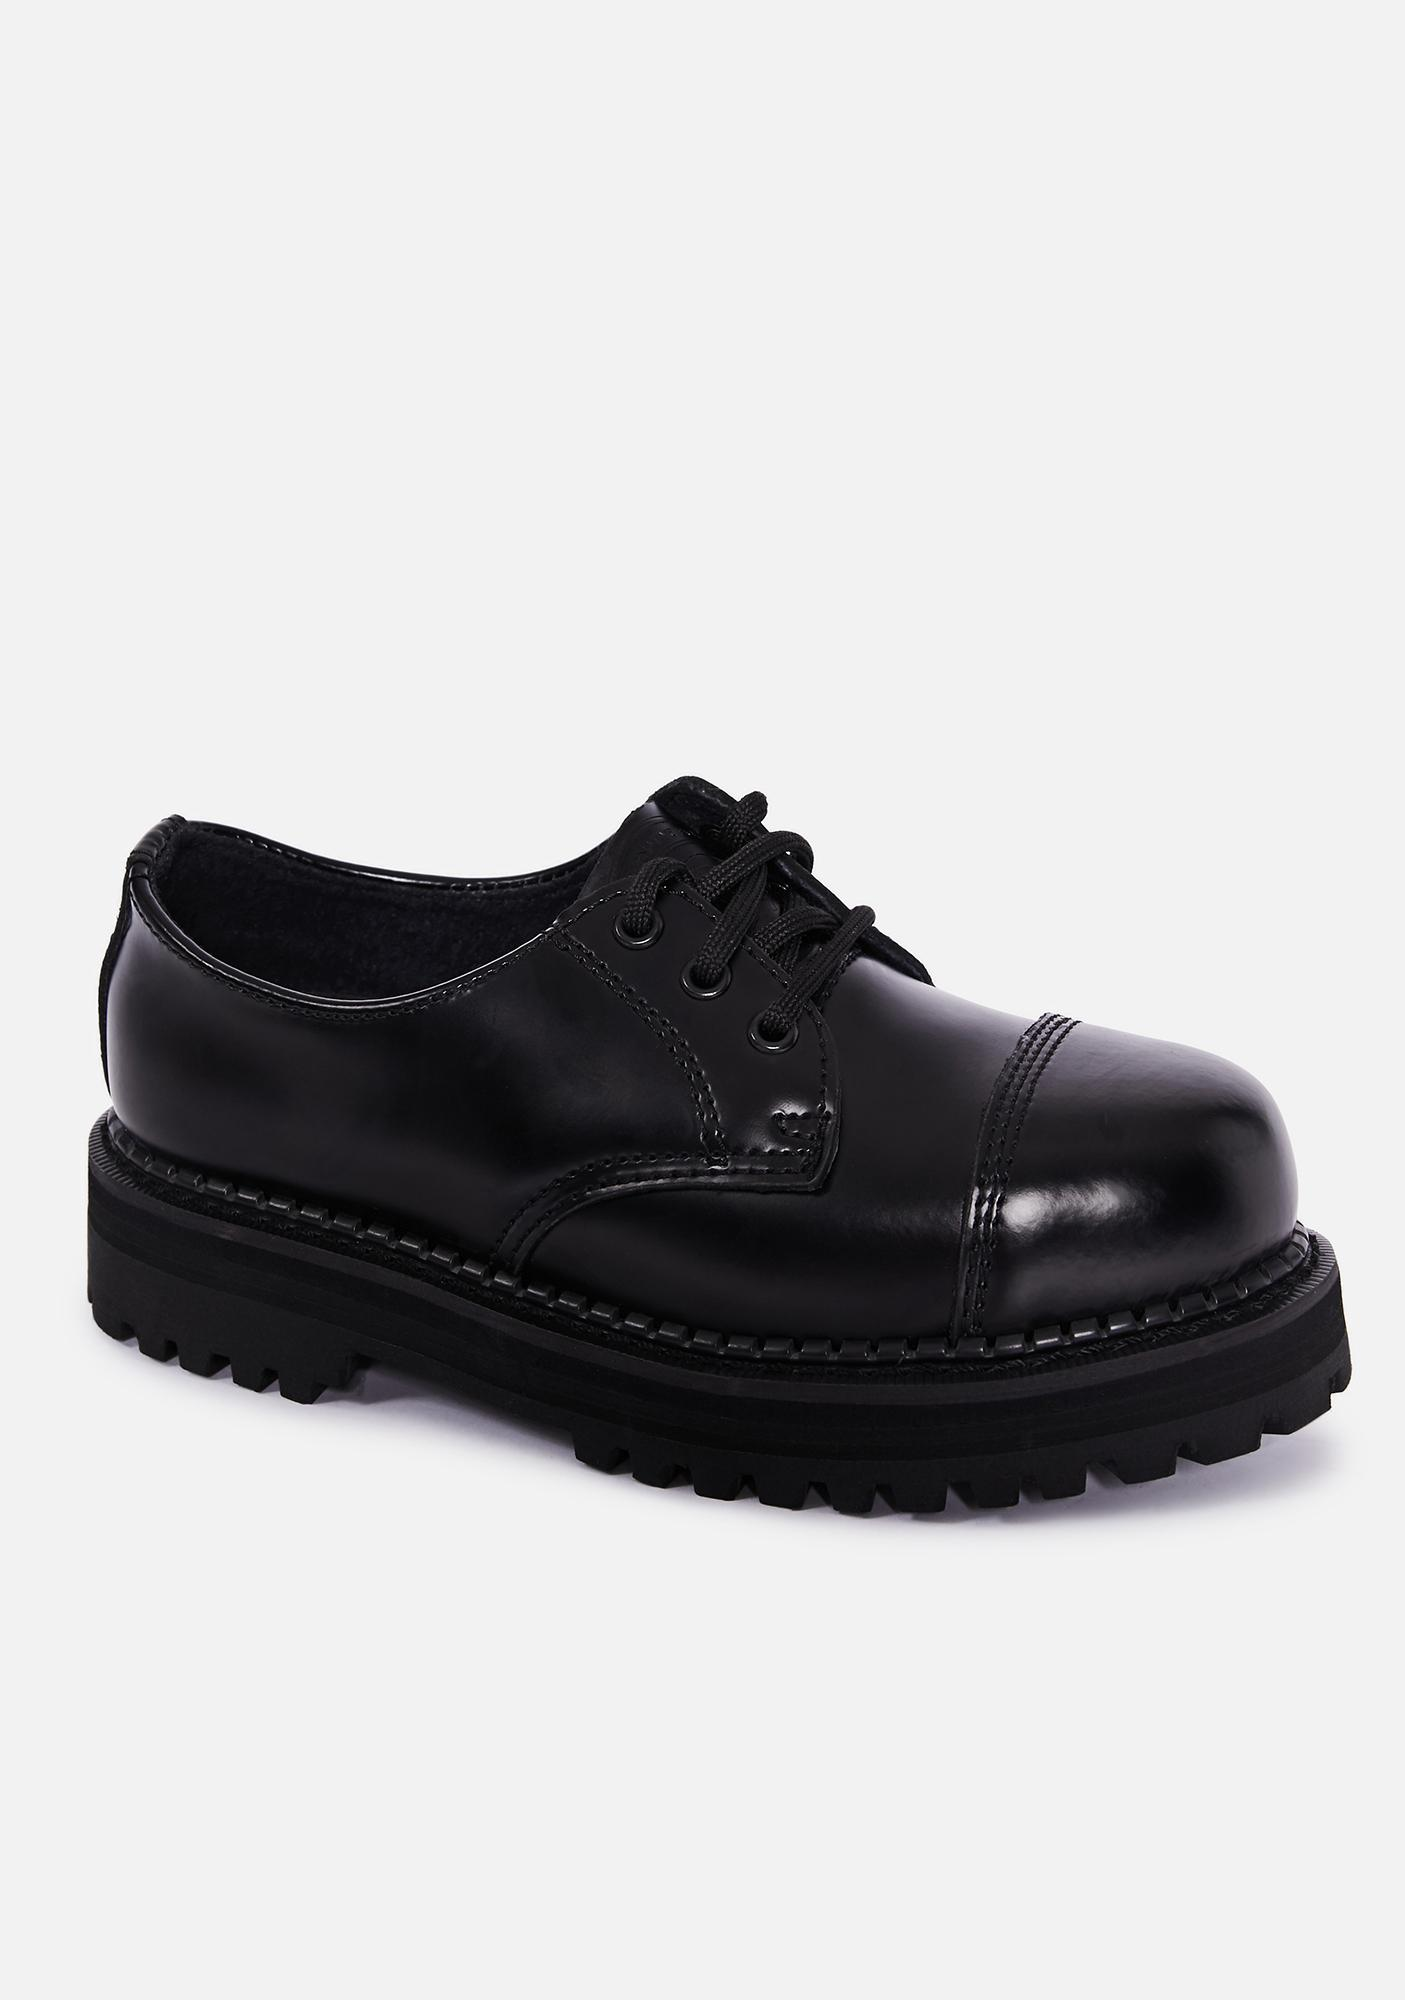 Demonia Proper Work Oxford Shoes